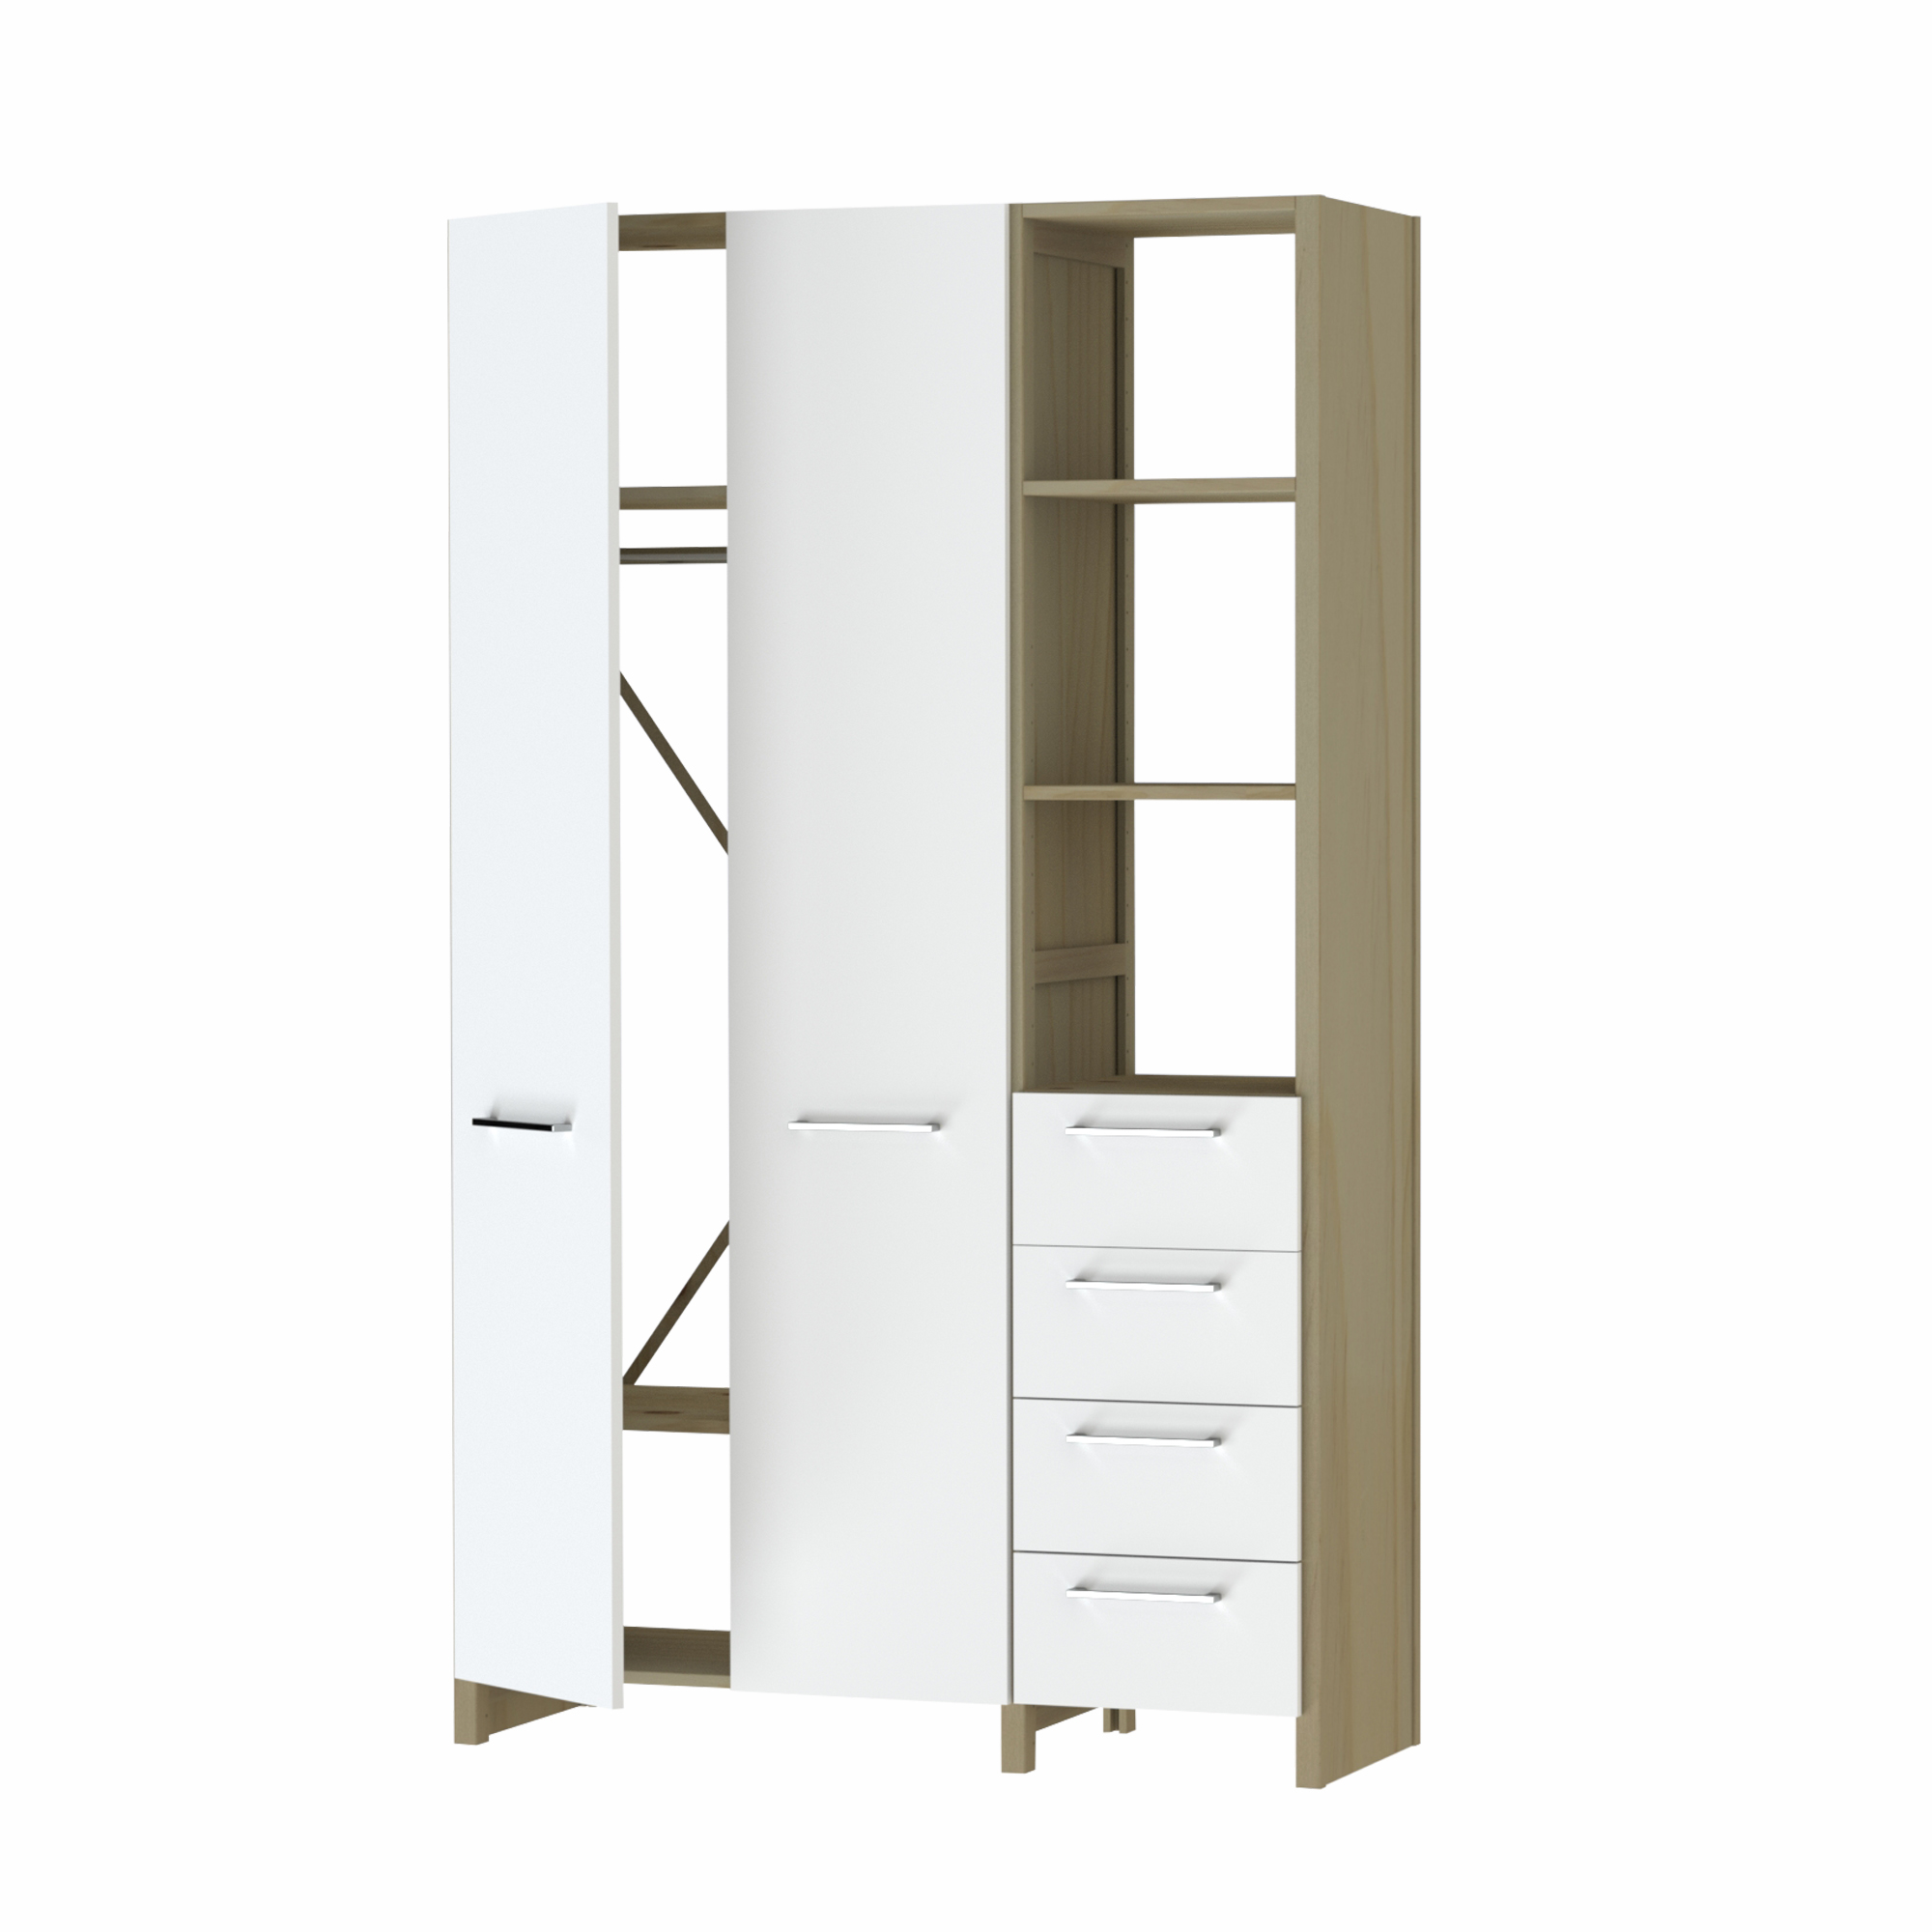 Cupboard Wardrobe with Drawers